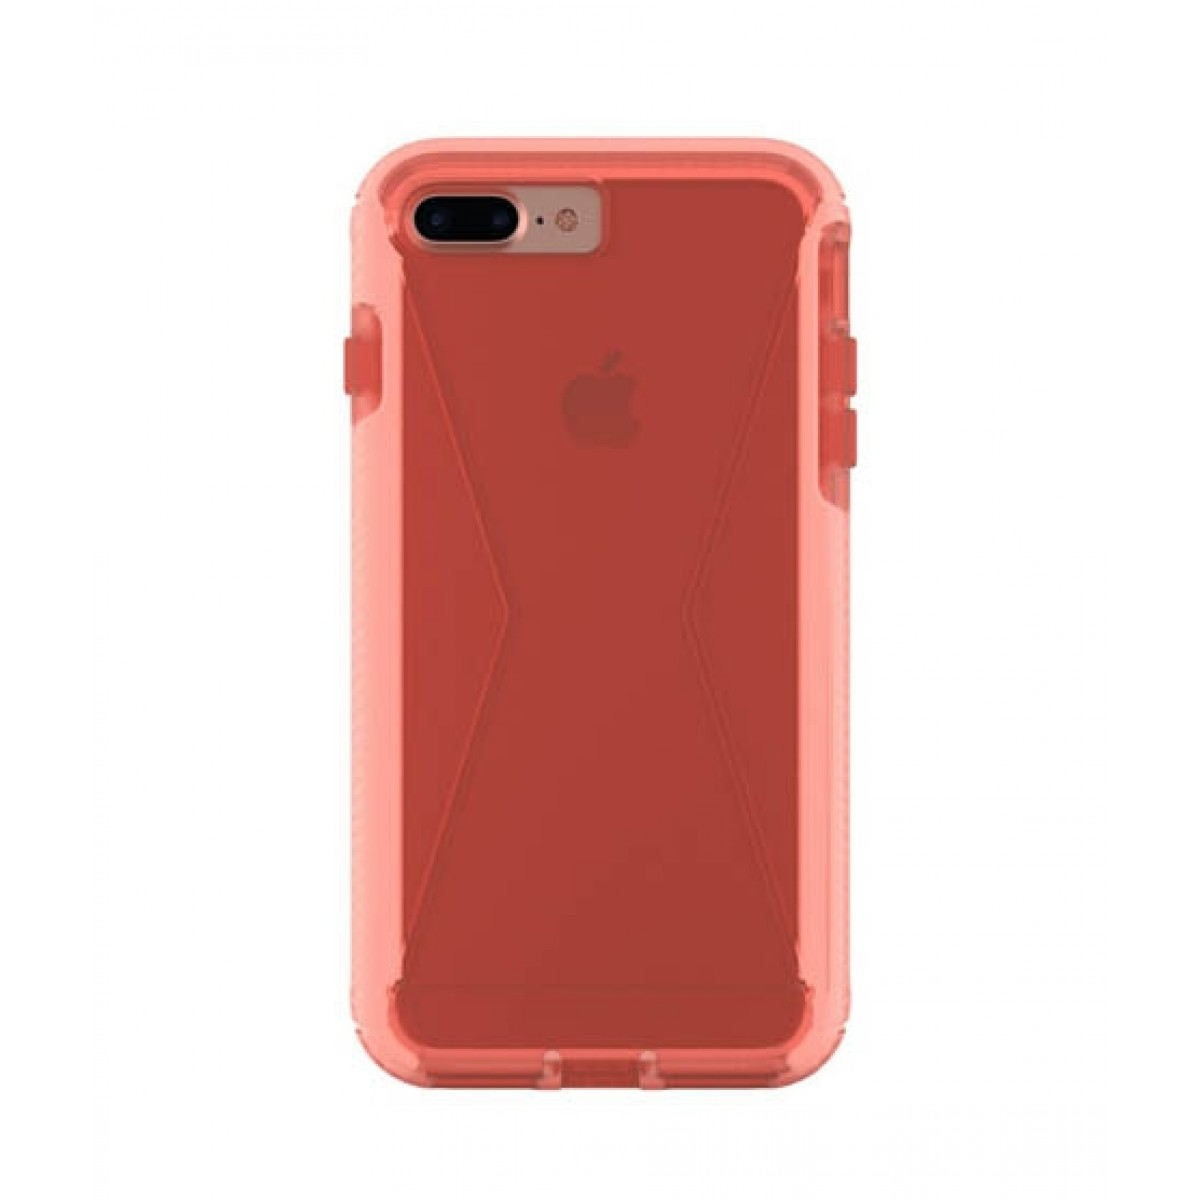 reputable site 152d2 7a876 Tech21 Evo Tactical Extreme Rose Case For iPhone 8 Plus